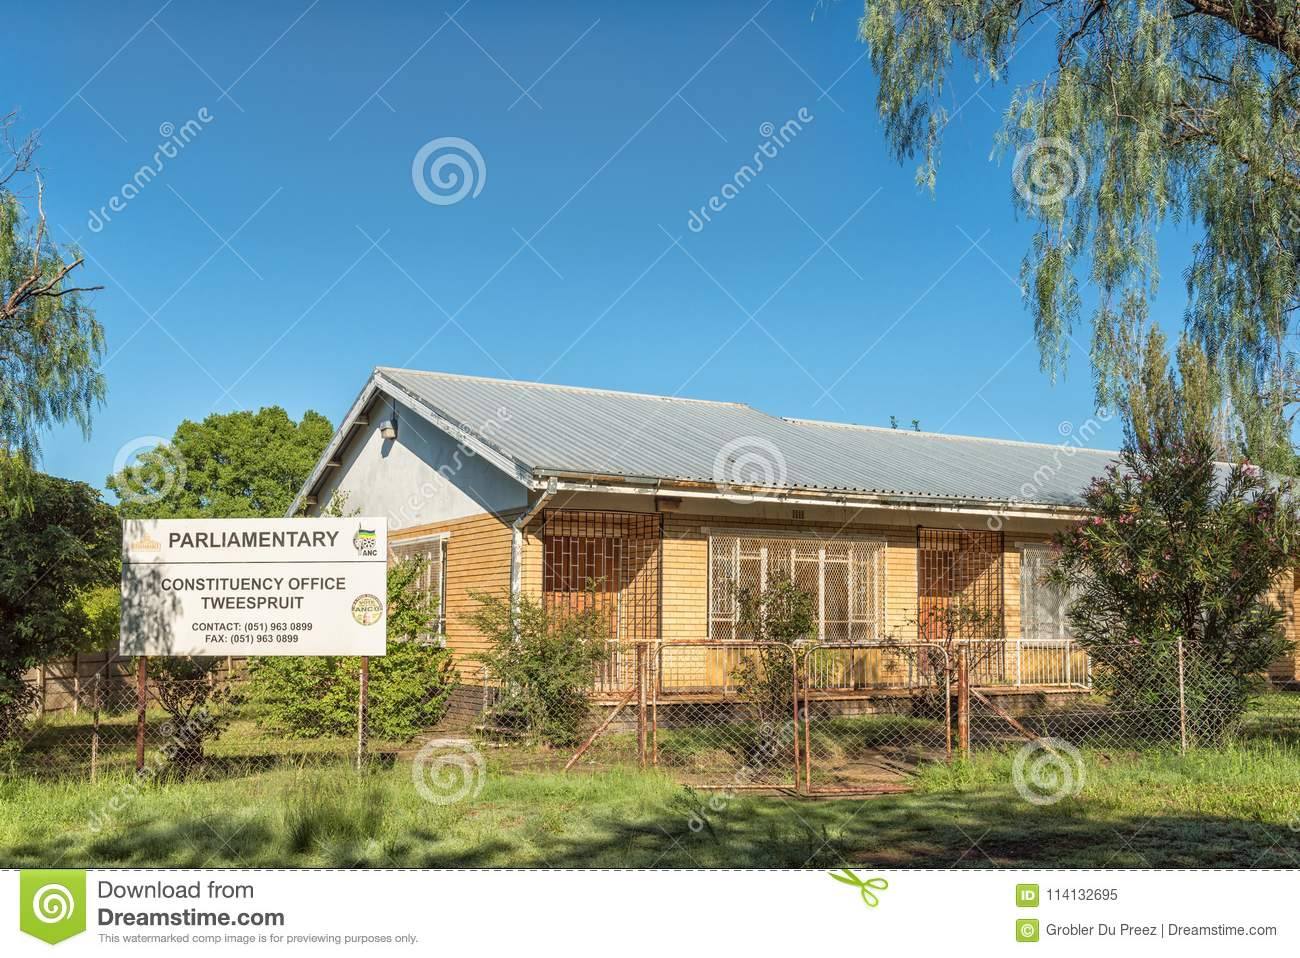 African National Congress parliamentary constituency office in T